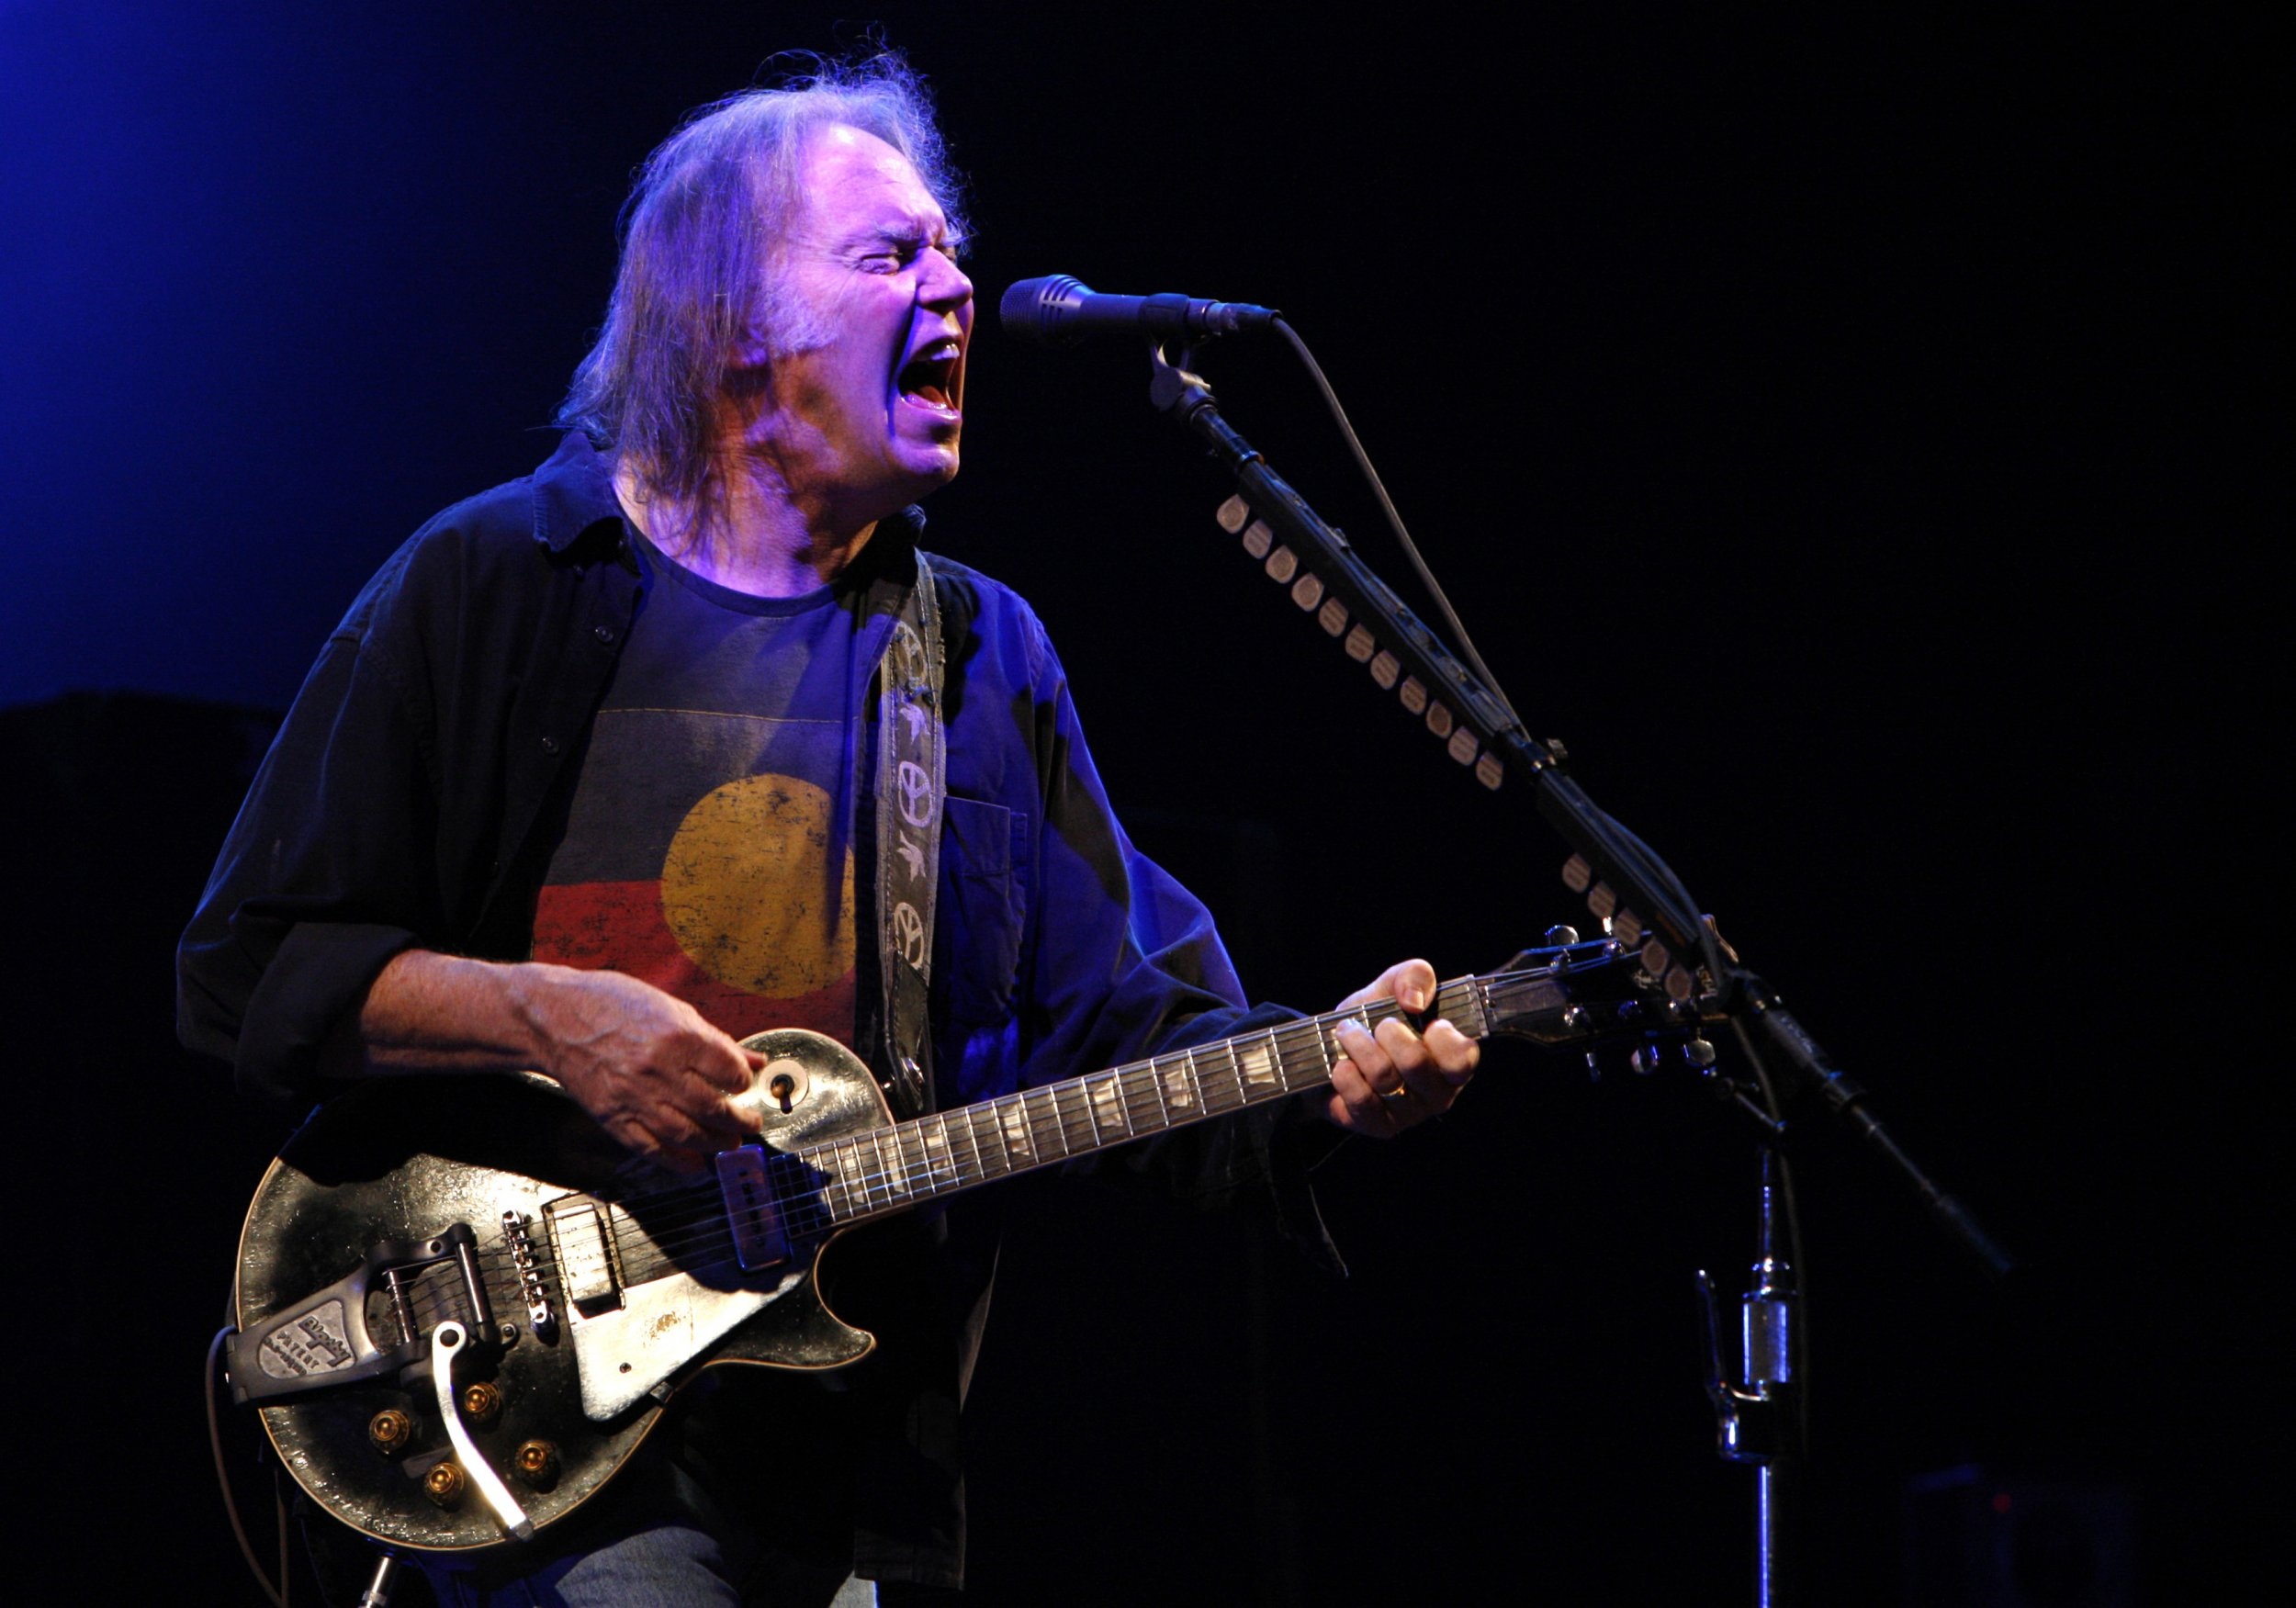 70 Neil Young Deep Cuts To Listen To On His 70th Birthday